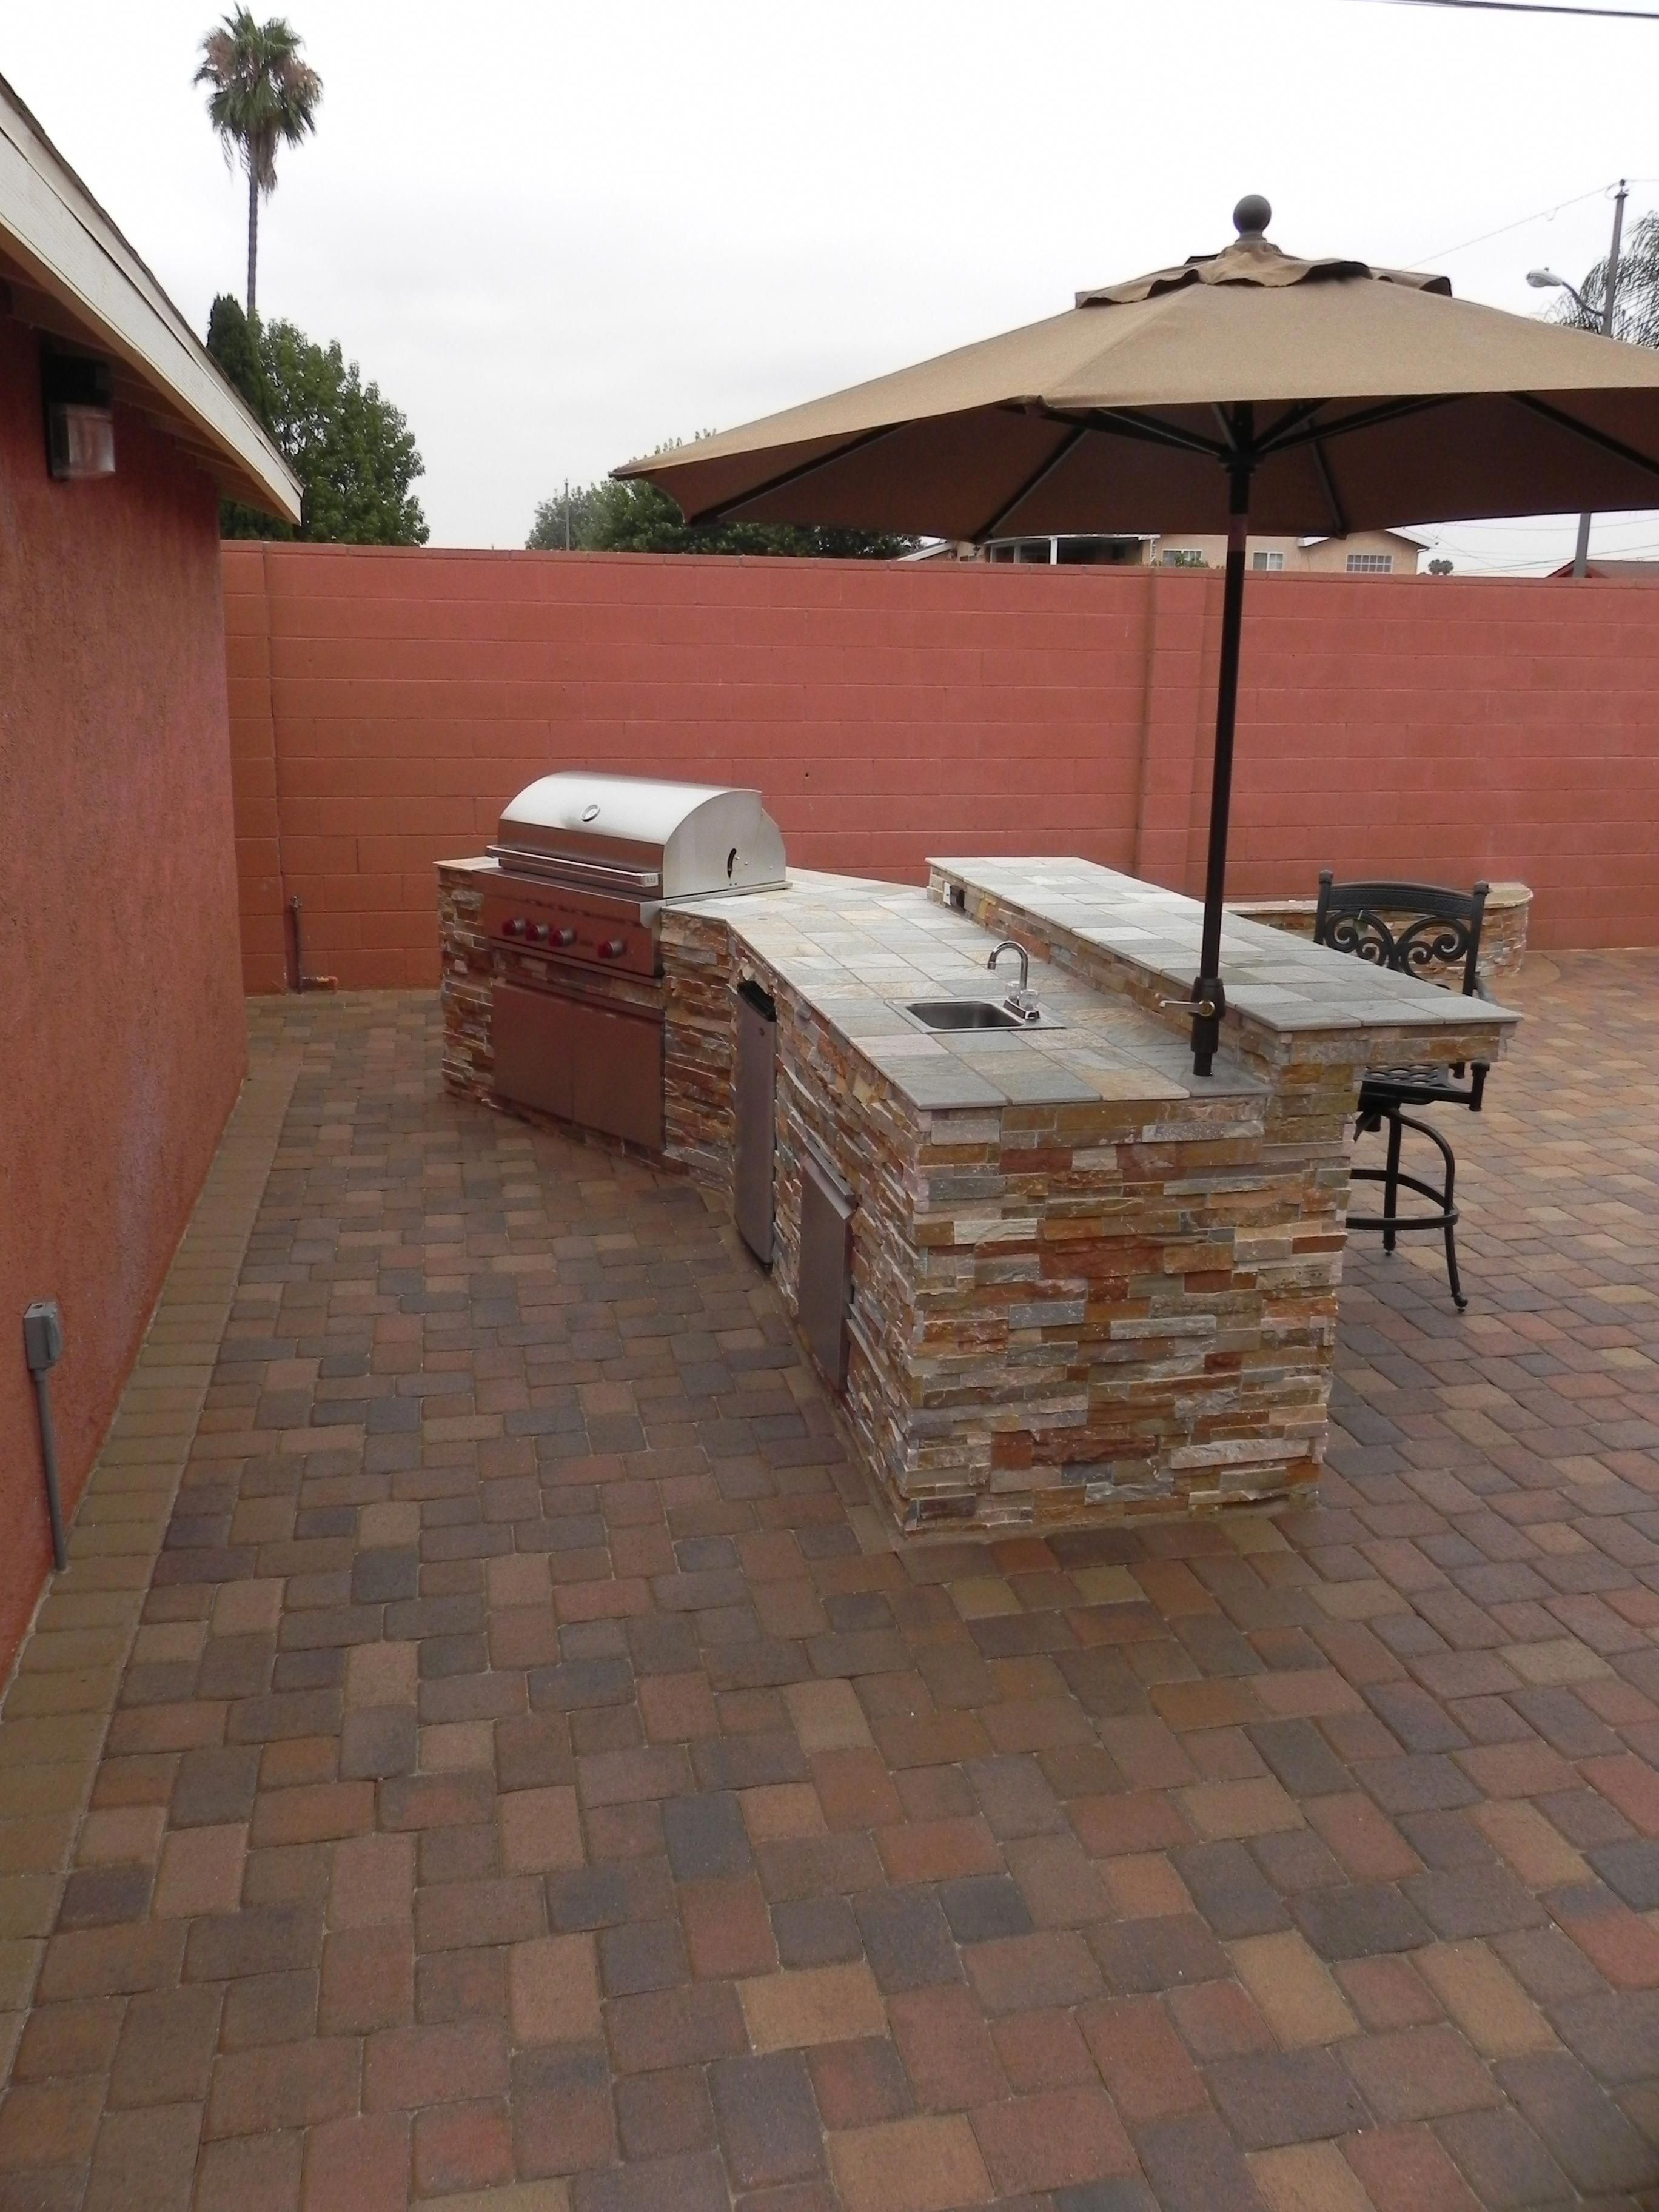 paradise outdoor kitchens for entertaining guests outdoor kitchen island backyard patio on outdoor kitchen island id=66871